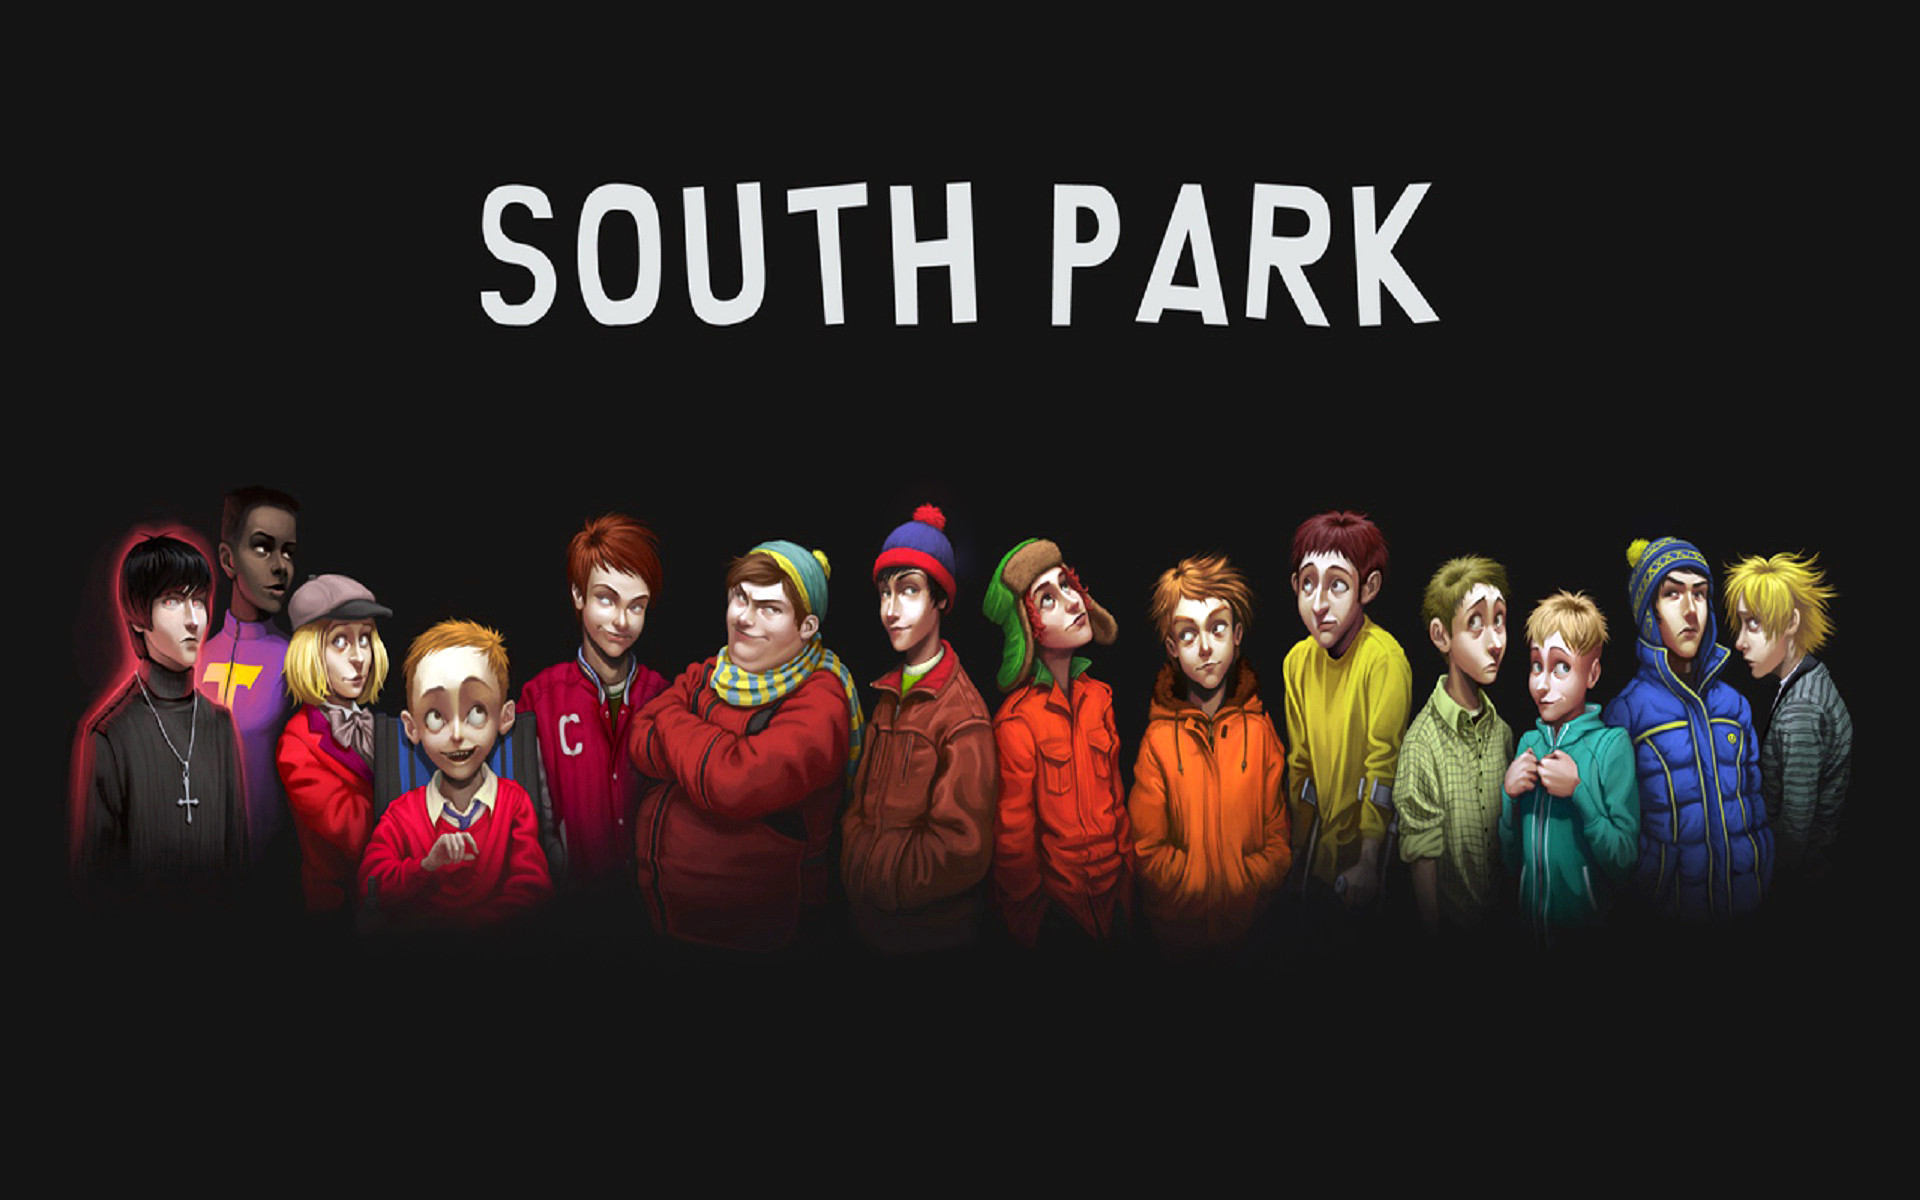 Southpark Computer Wallpapers Desktop Backgrounds 1920x1200 ID 1920x1200